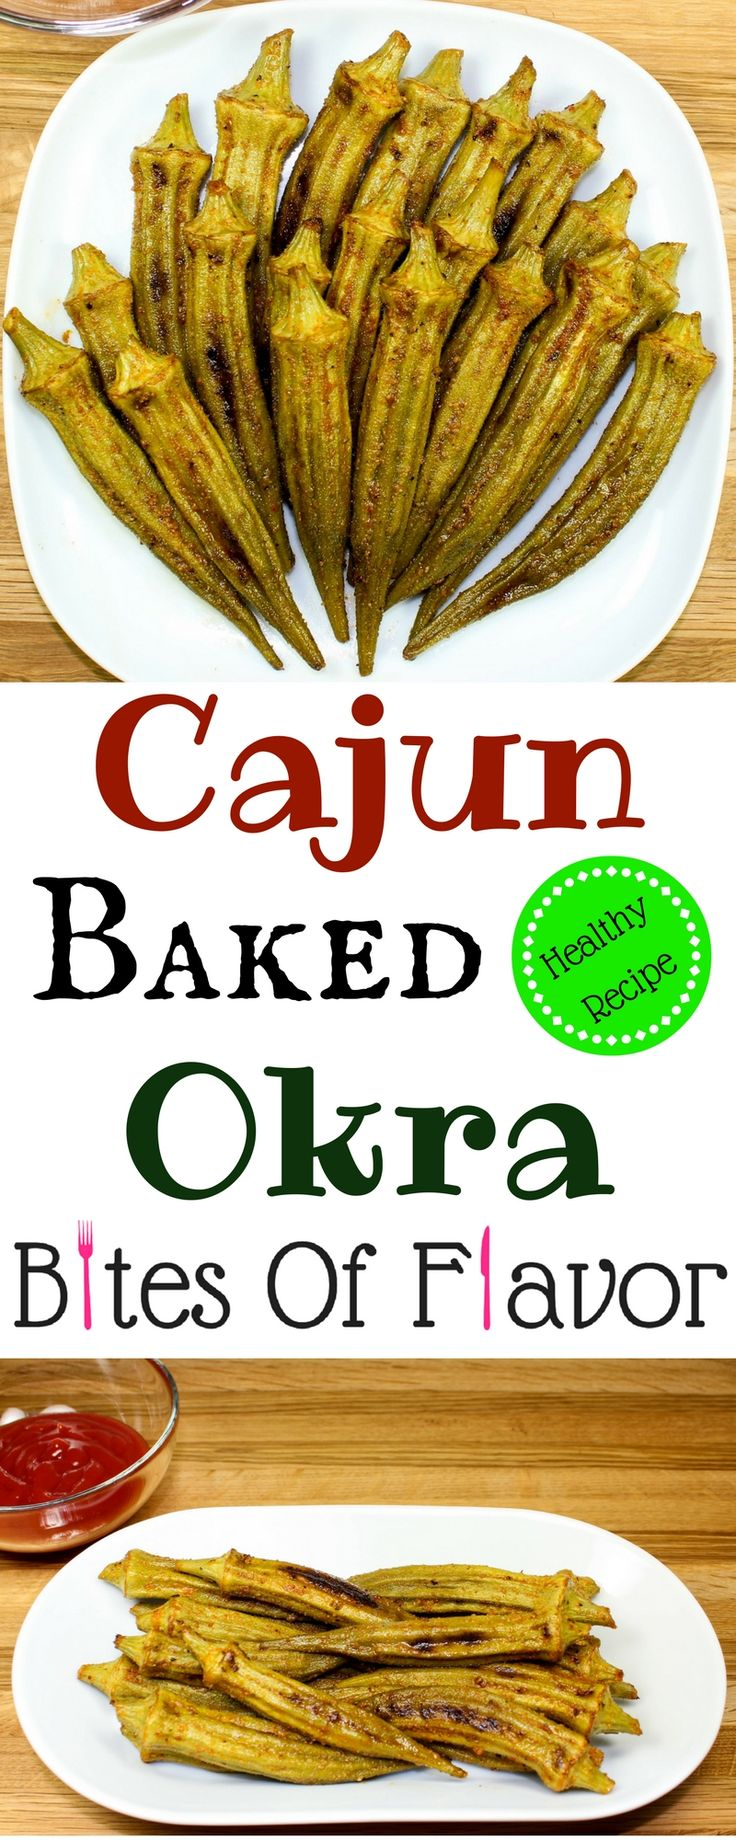 Cajun Baked Okra-Perfect side dish for any meal!  Packed with Cajun seasonings, crispy, and easy to make.  Healthy alternative to fried okra!  Weight Watcher friendly (4 SmartPoints)!